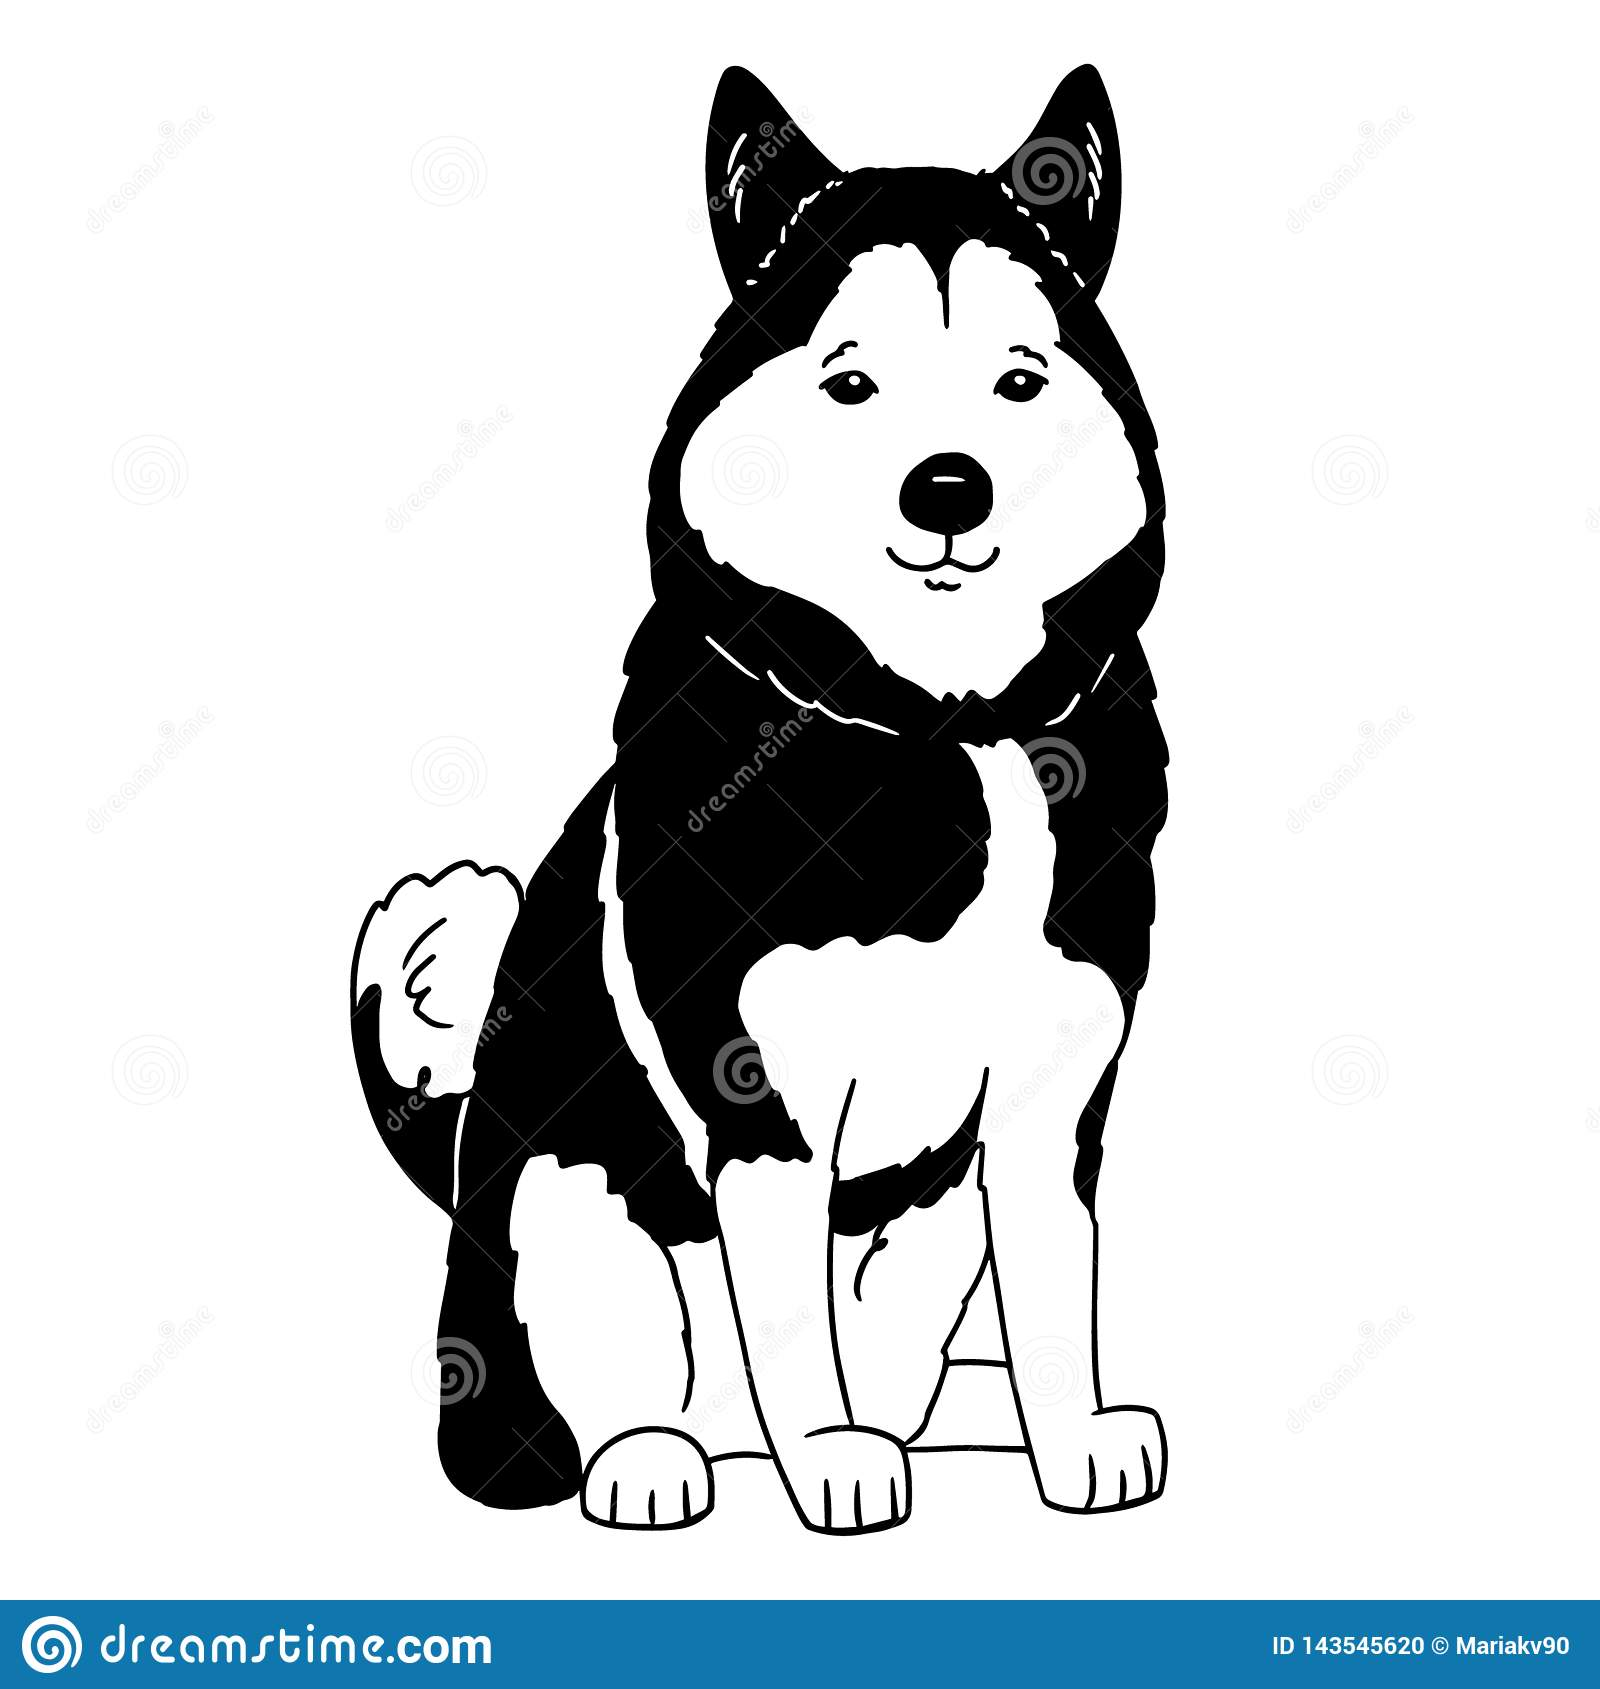 Cartoon husky logo. Portrait of a husky on white background. Black and white dog silhouette. Vector illustration of a pet. Hand